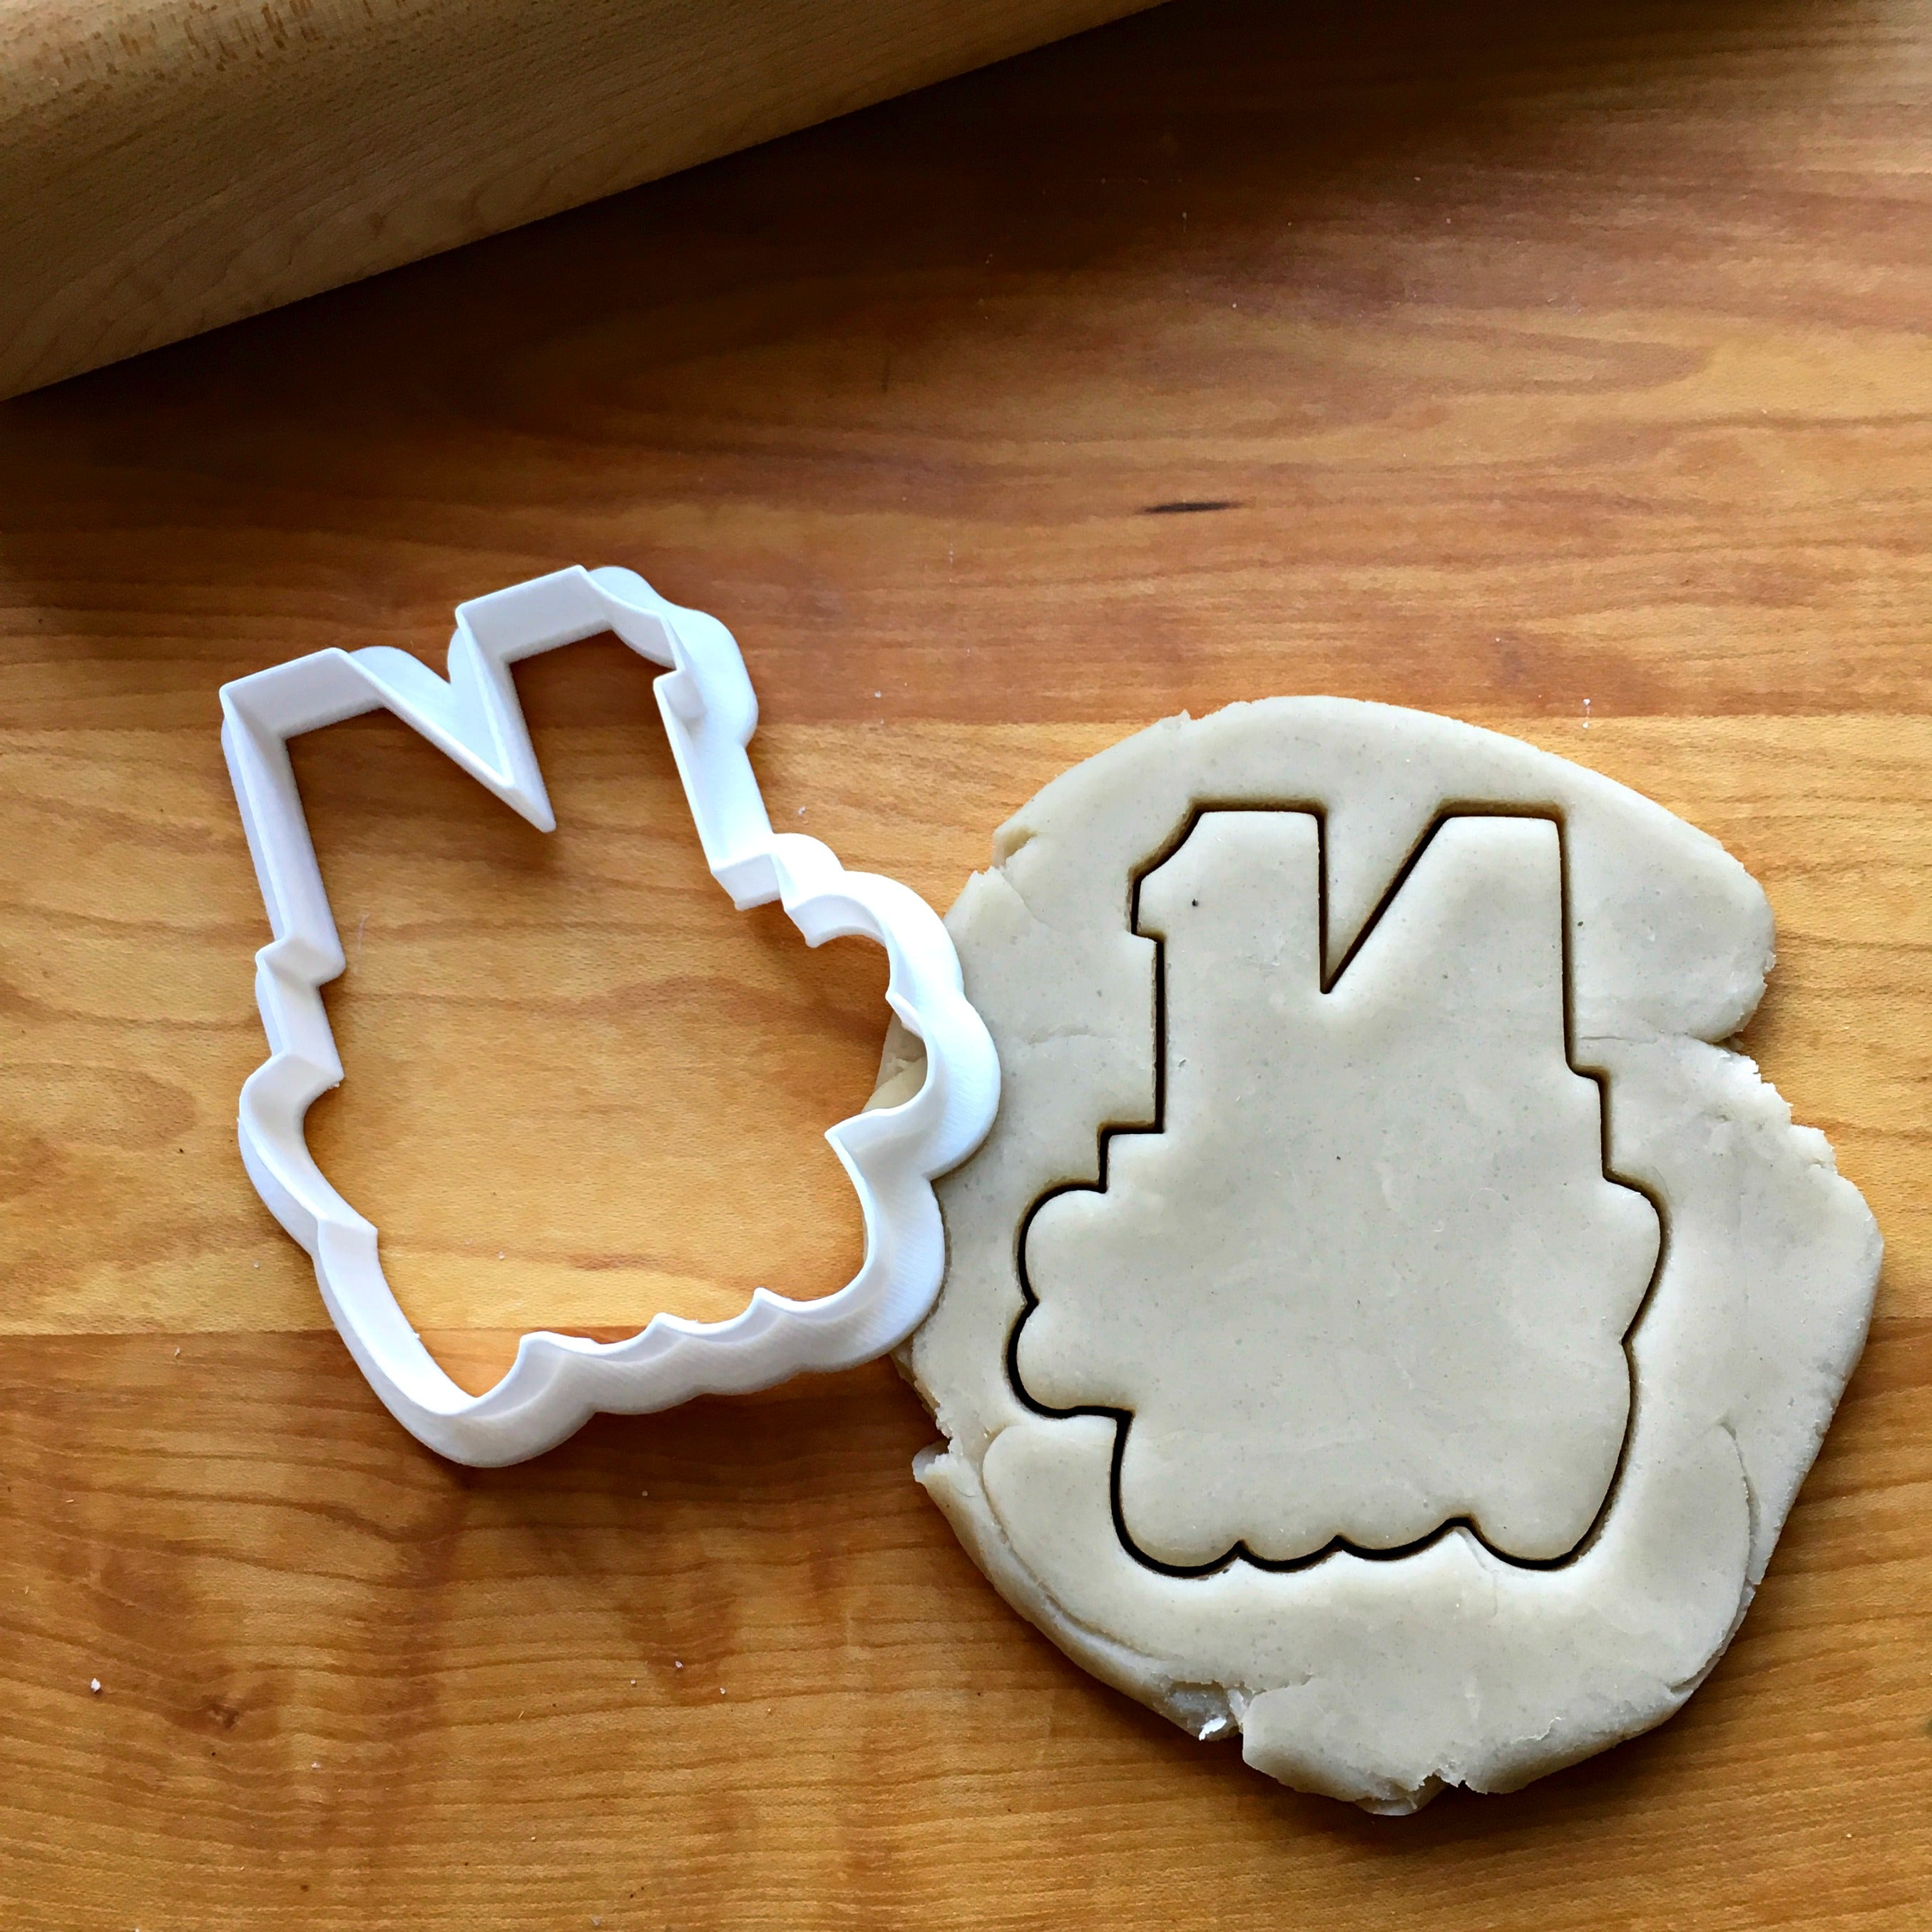 Lettered Number 14 Cookie Cutter/Dishwasher Safe